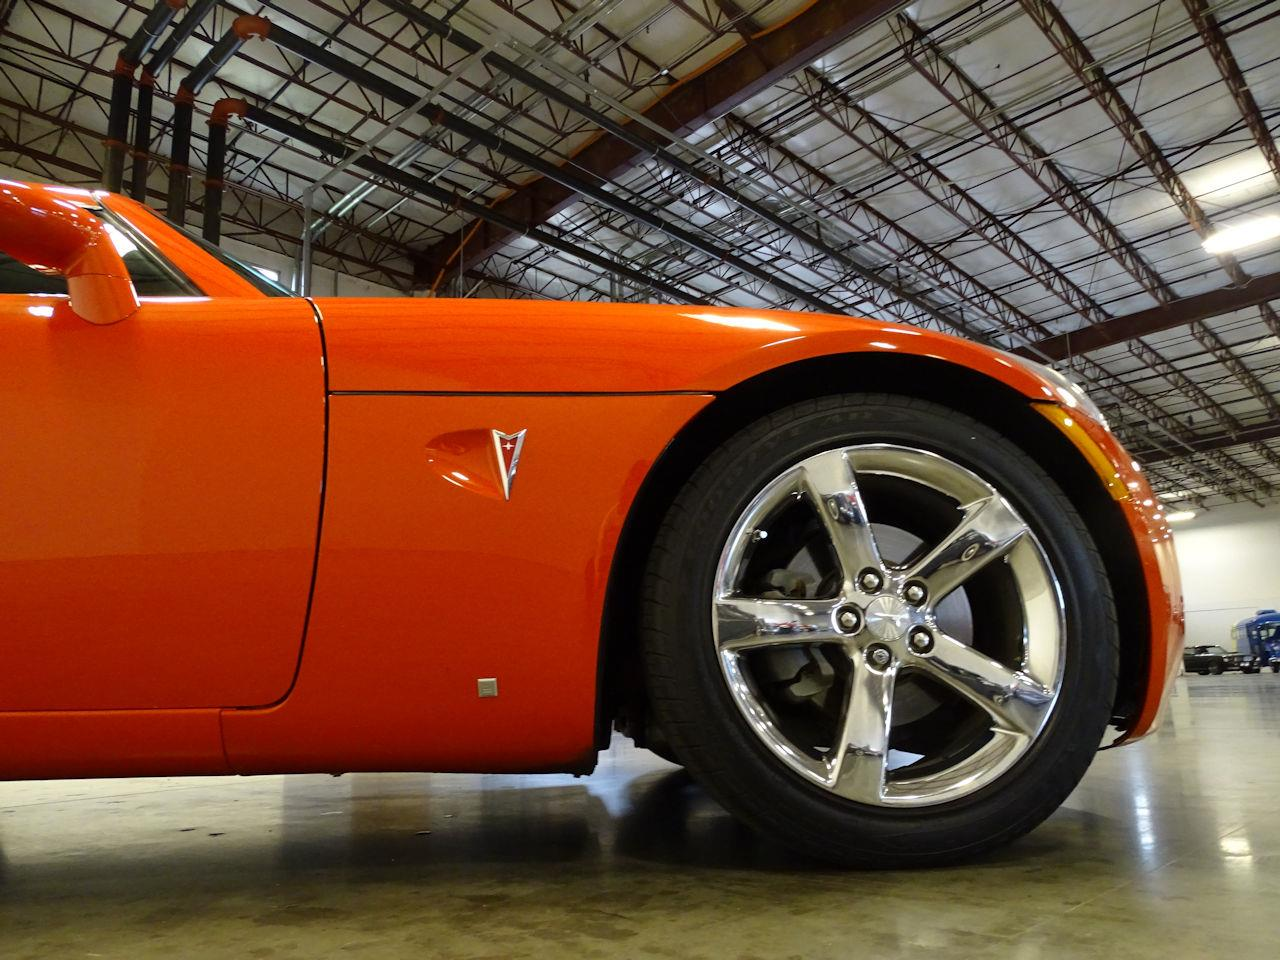 2009 Pontiac Solstice (CC-1361725) for sale in O'Fallon, Illinois